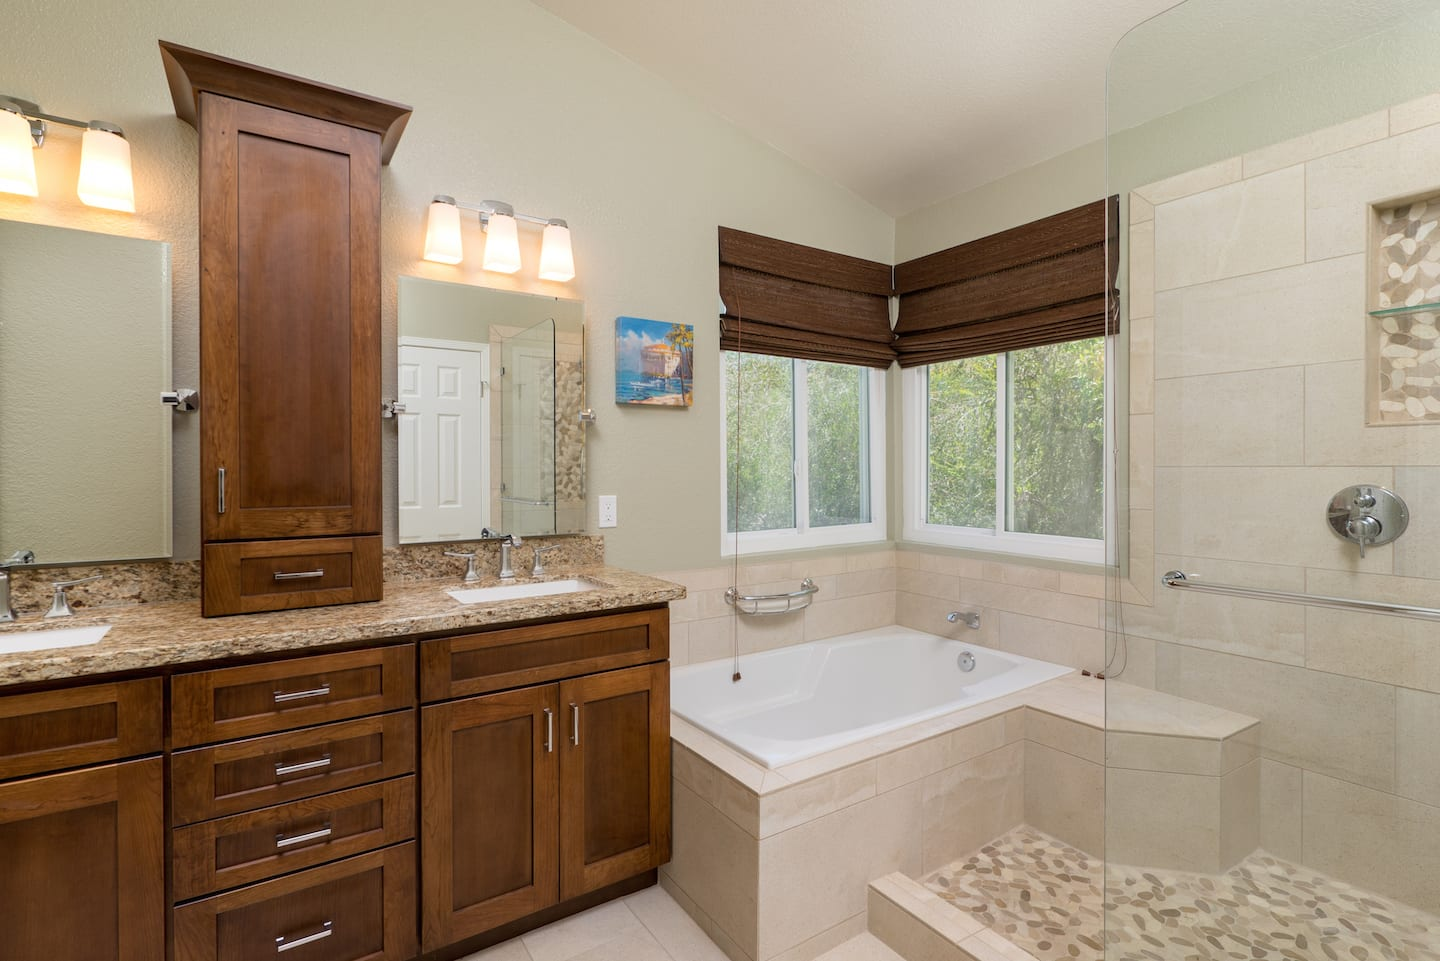 Remodel Bathroom Return On Investment bathroom remodeling - planning and hiring | angie's list